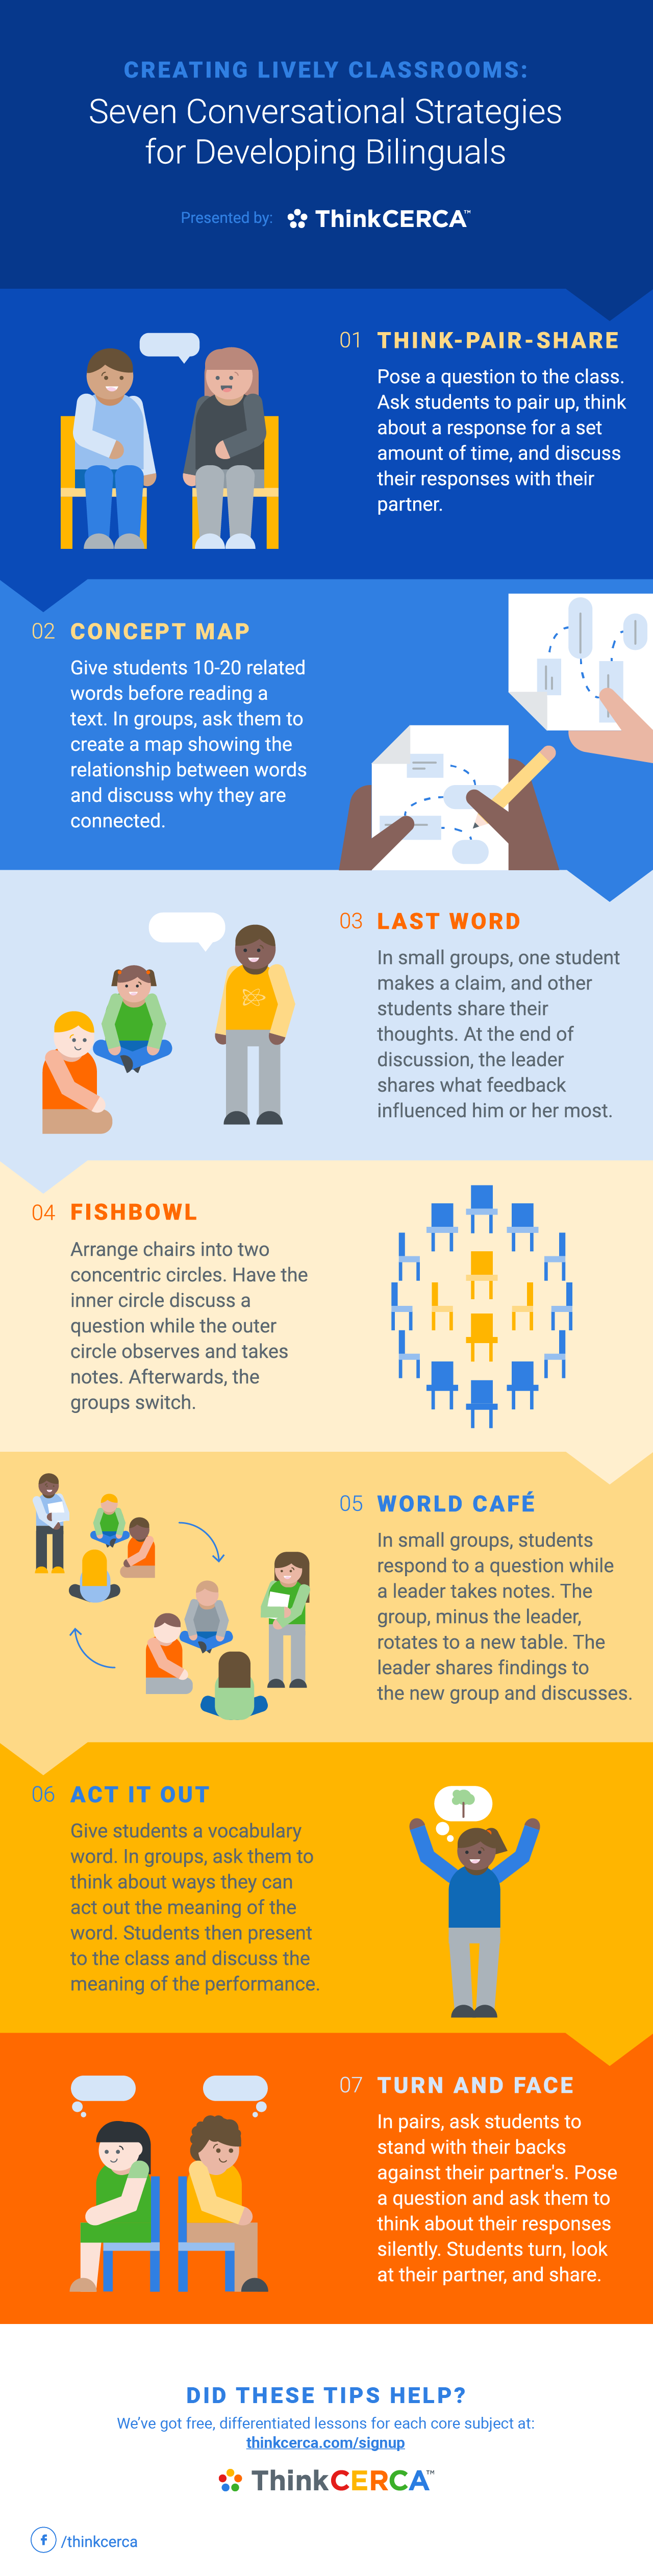 infographic_developing_bilinguals_blog.png